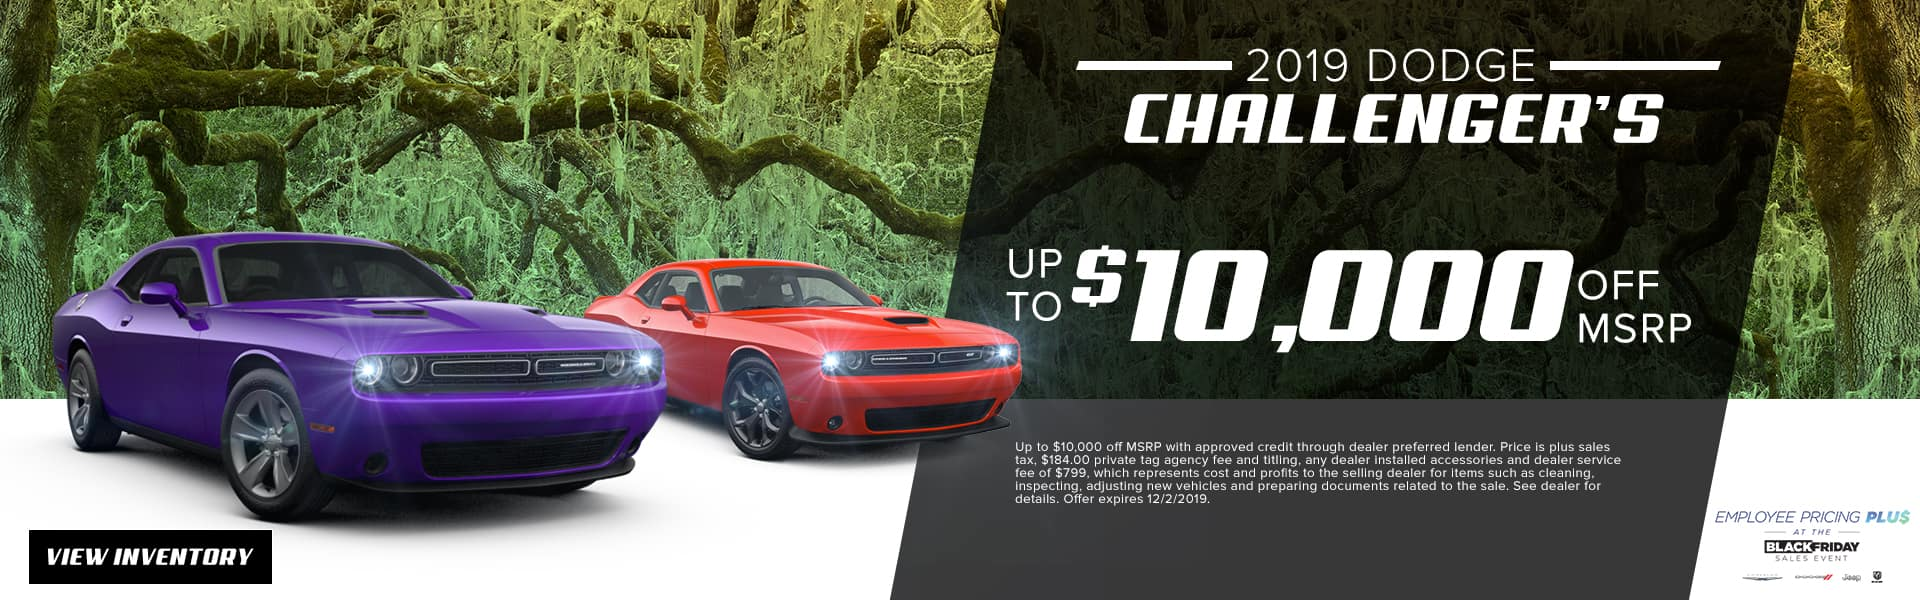 2019 Dodge Challengers | Up To $10,000 Off MSRP